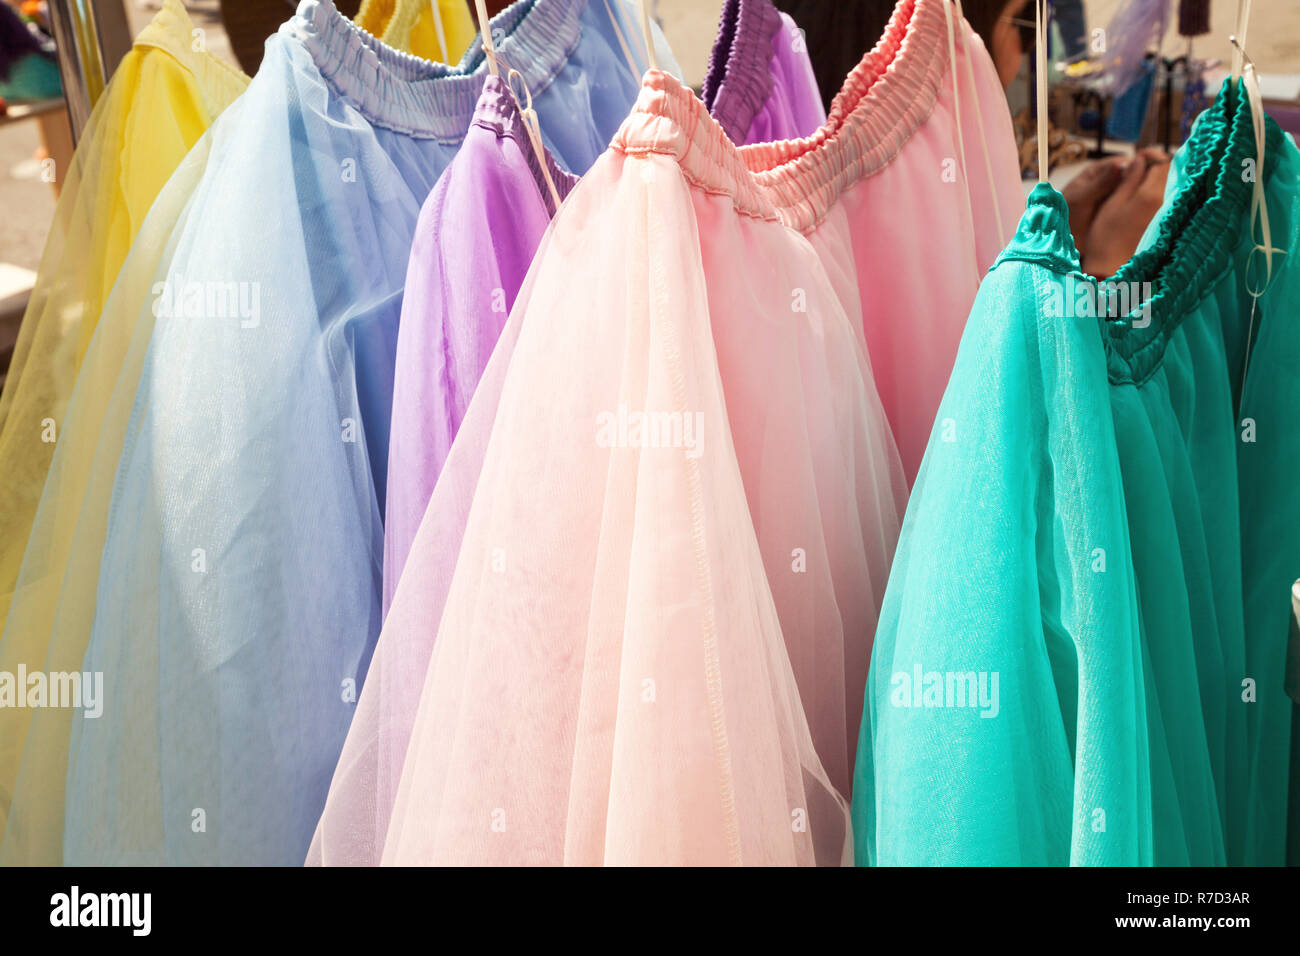 Row of hanging colorful gauze skirts at a clothing store. Brightly colored performance costumes background - Stock Image